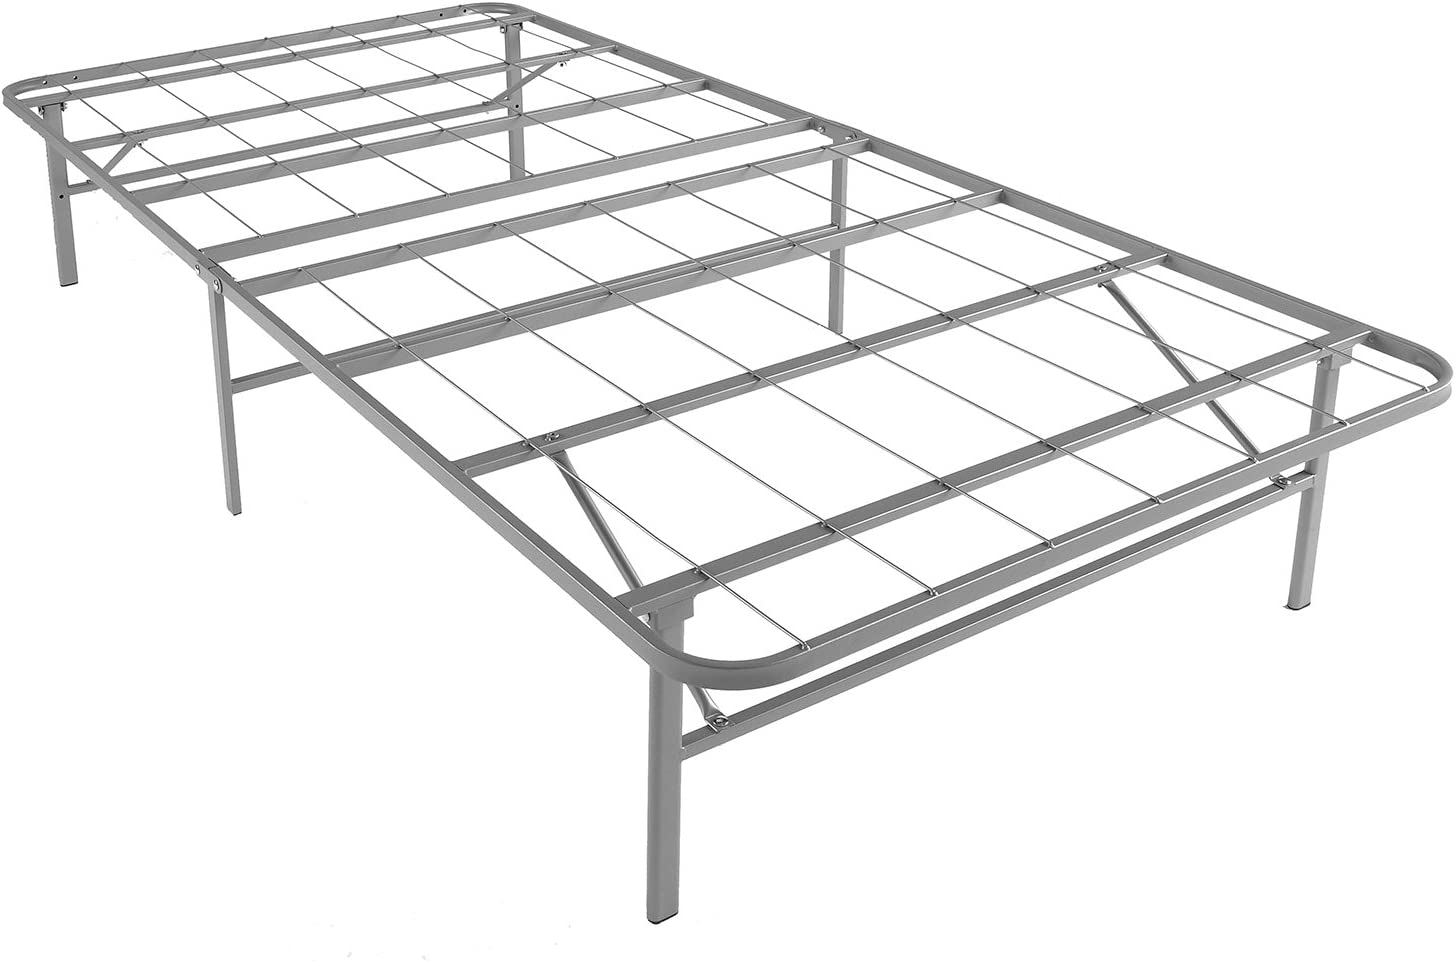 EZ-Fold Platform Bed Frame - Too Storage No Foldable Under-Bed Ranking TOP19 NEW before selling